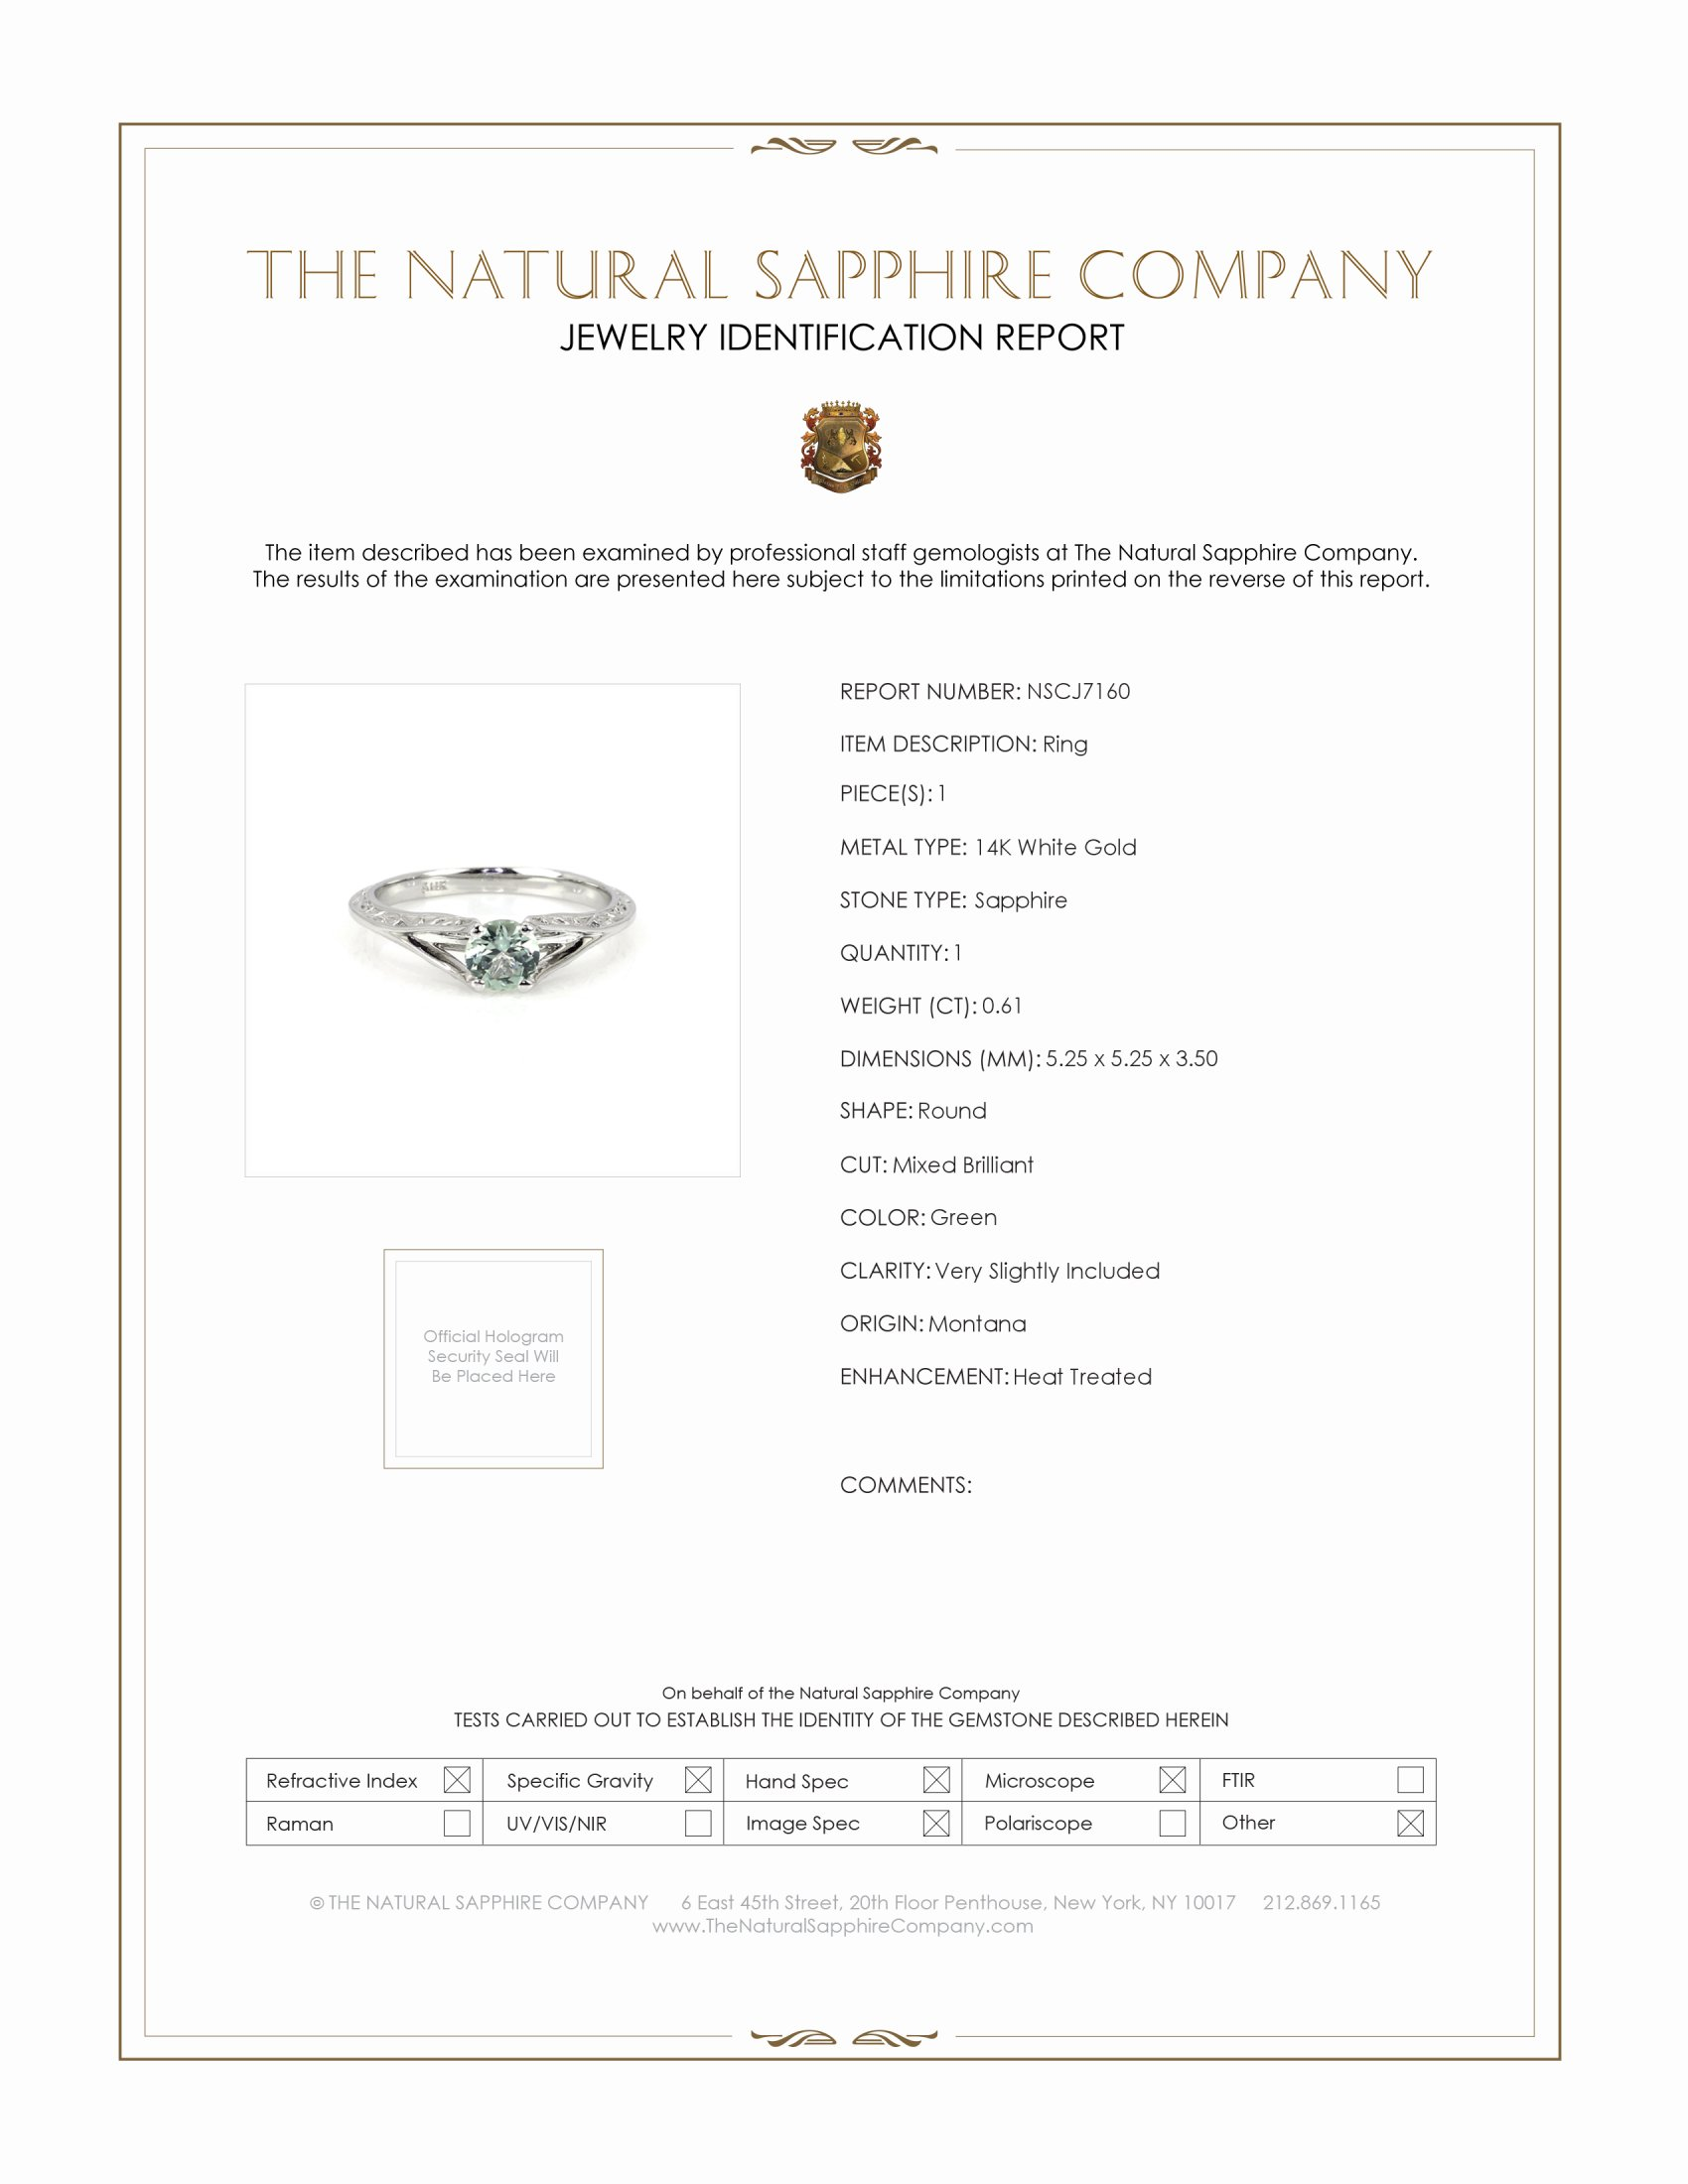 0.61ct Green Sapphire Ring Certification